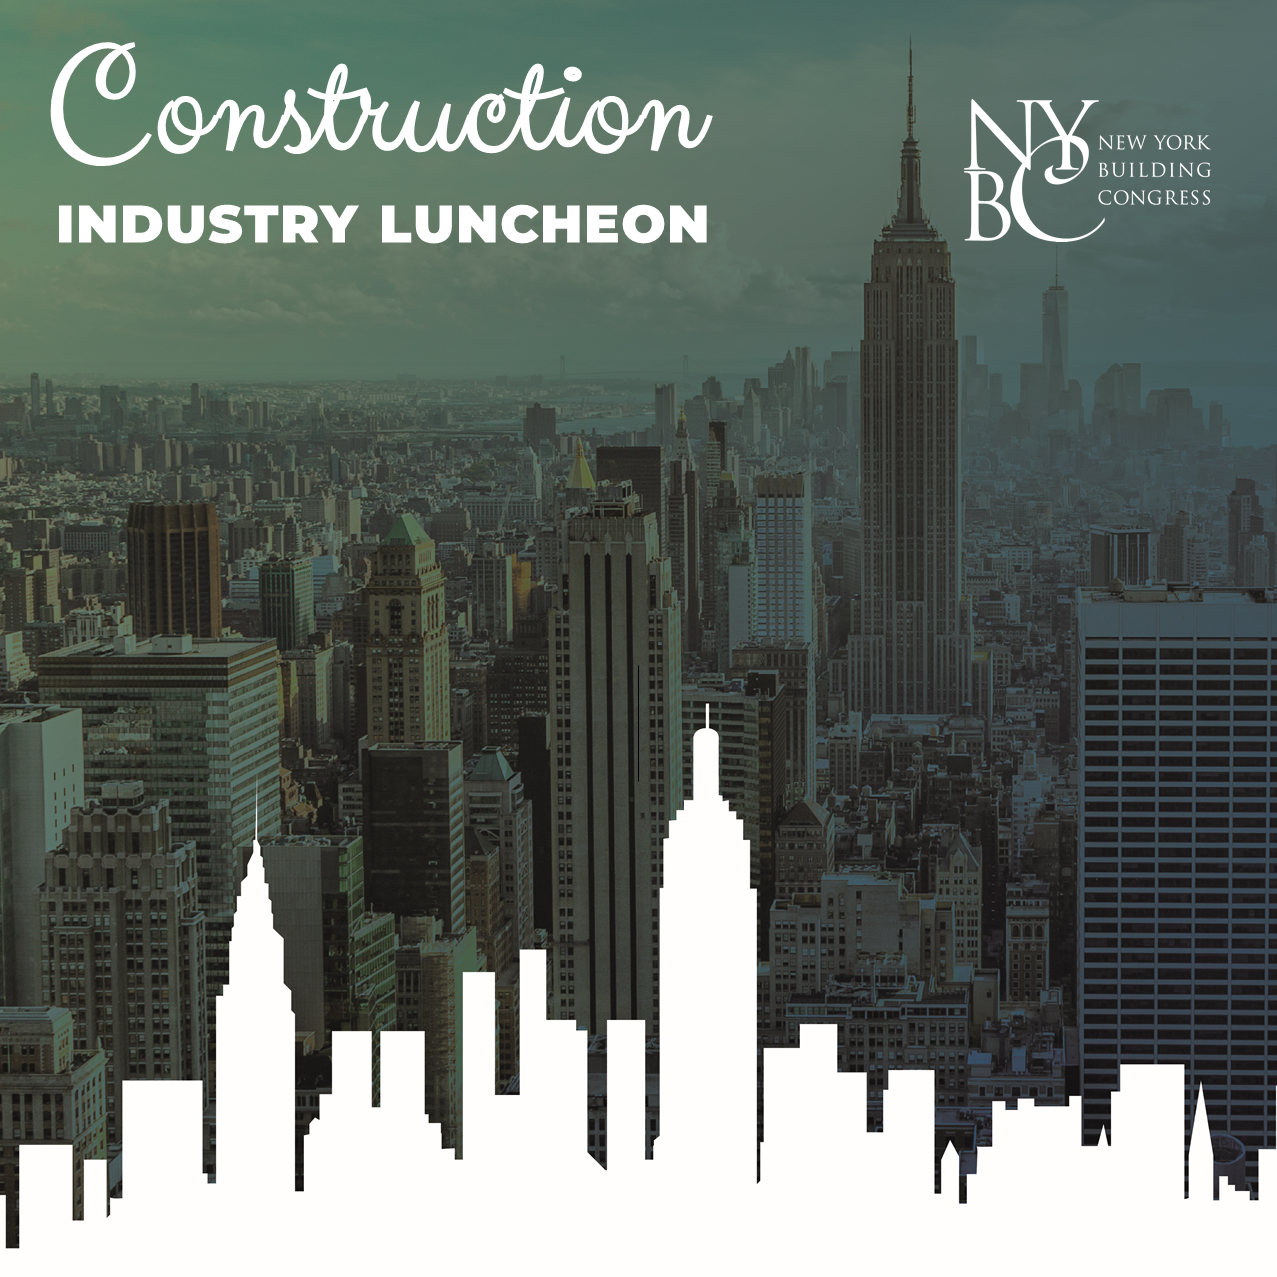 Construction Industry Luncheon